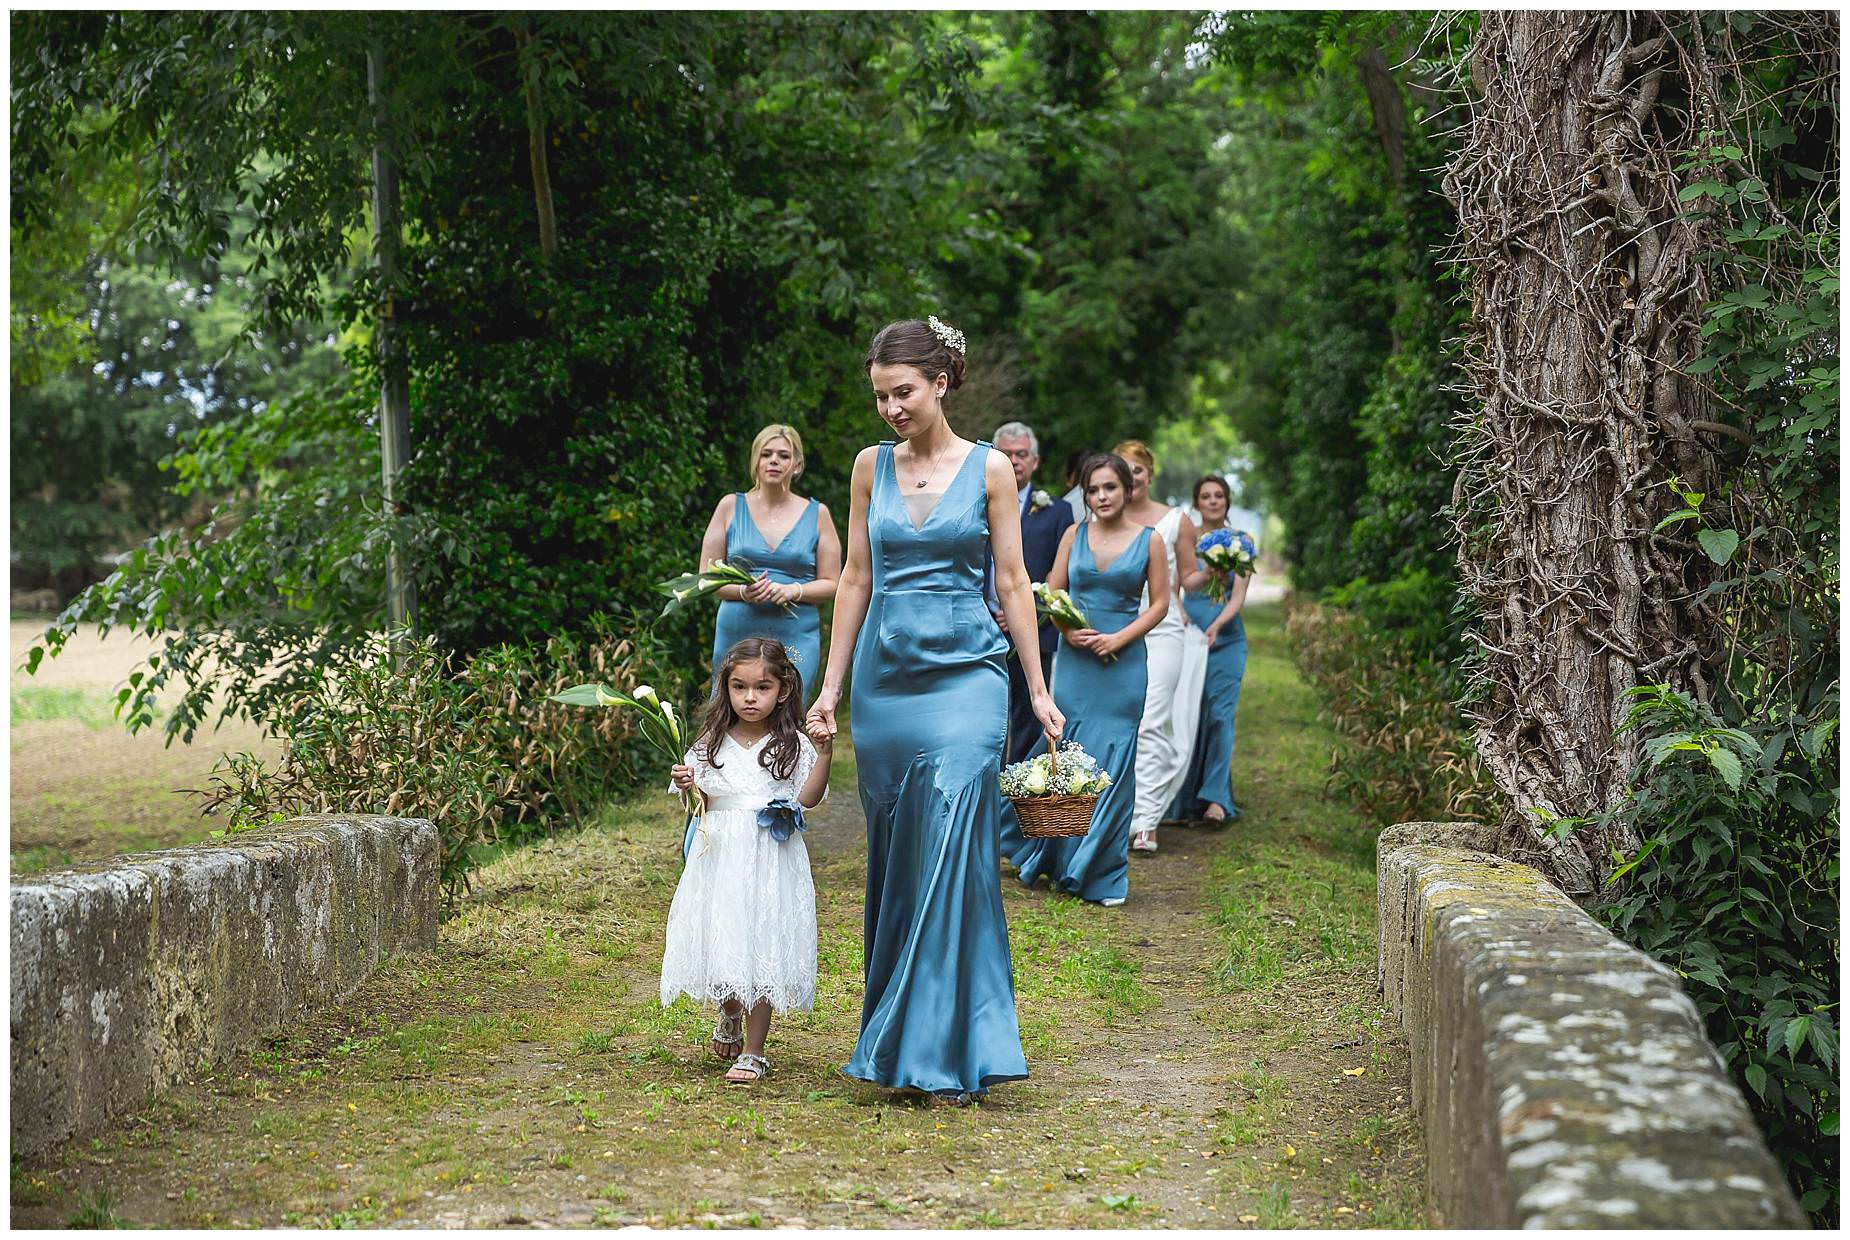 wedding party at Chateau Roquelune